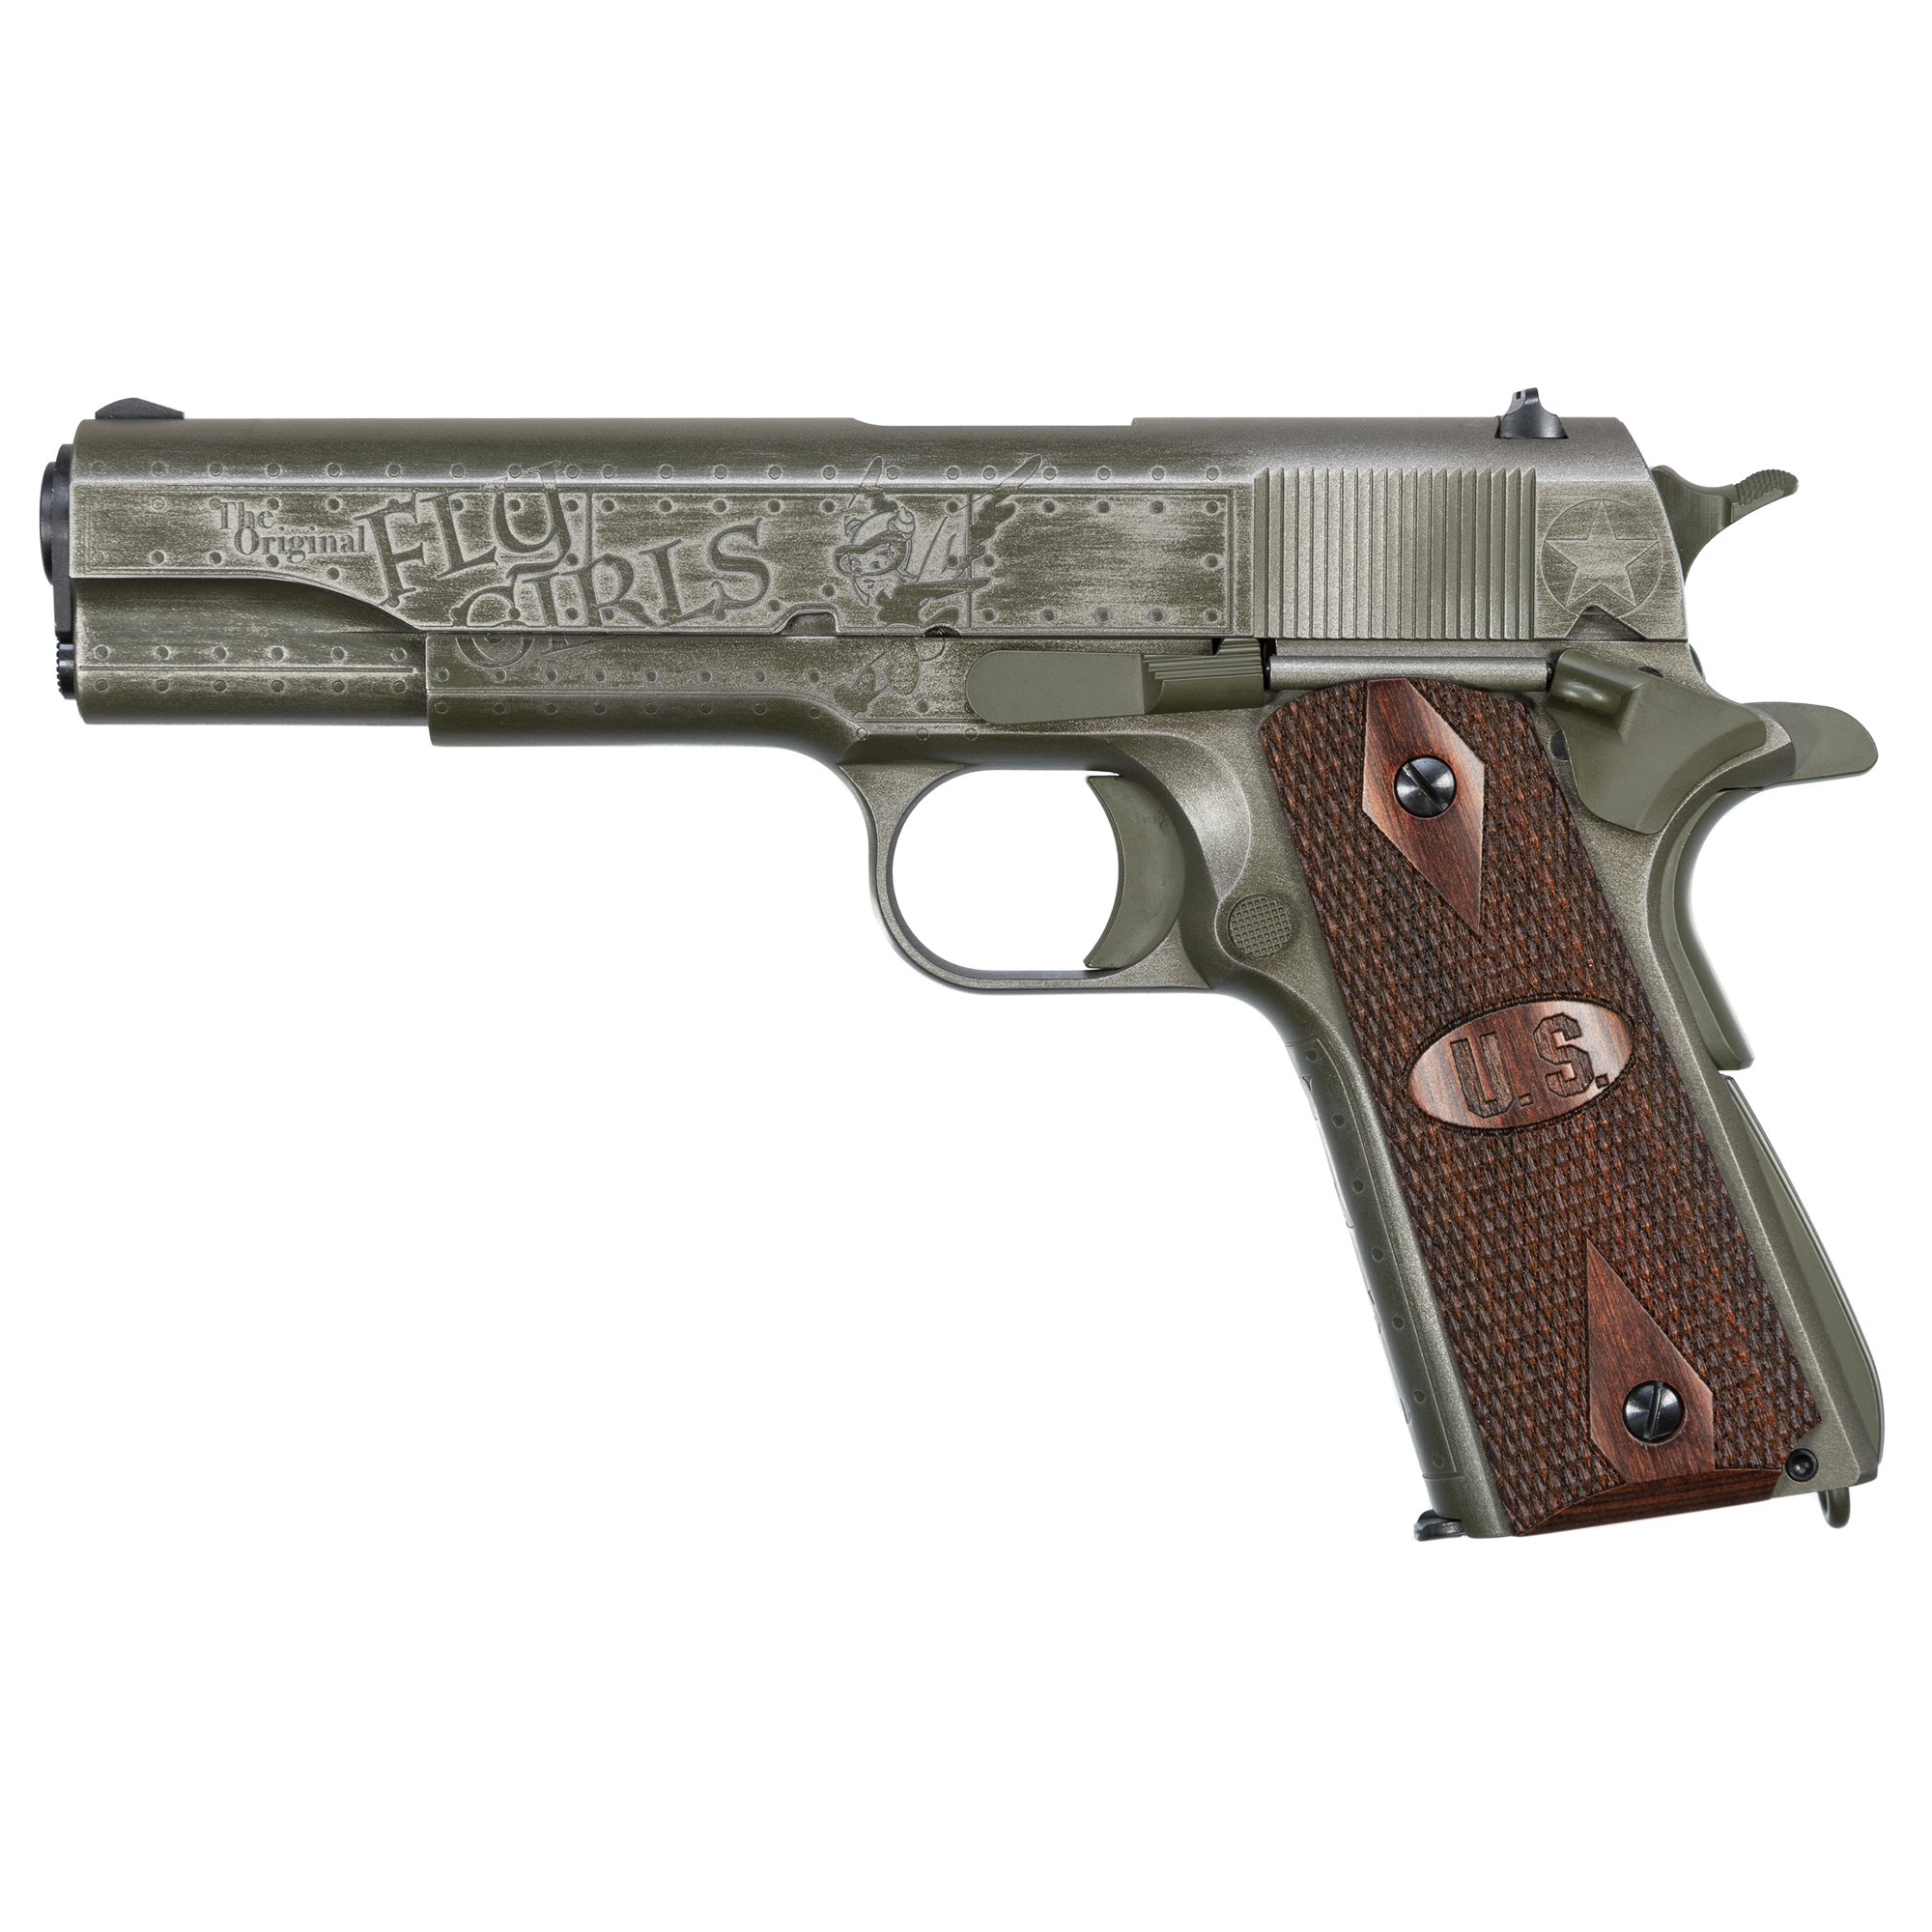 "Auto Ord Fly Girls 1911 45acp 5"" 7rd"